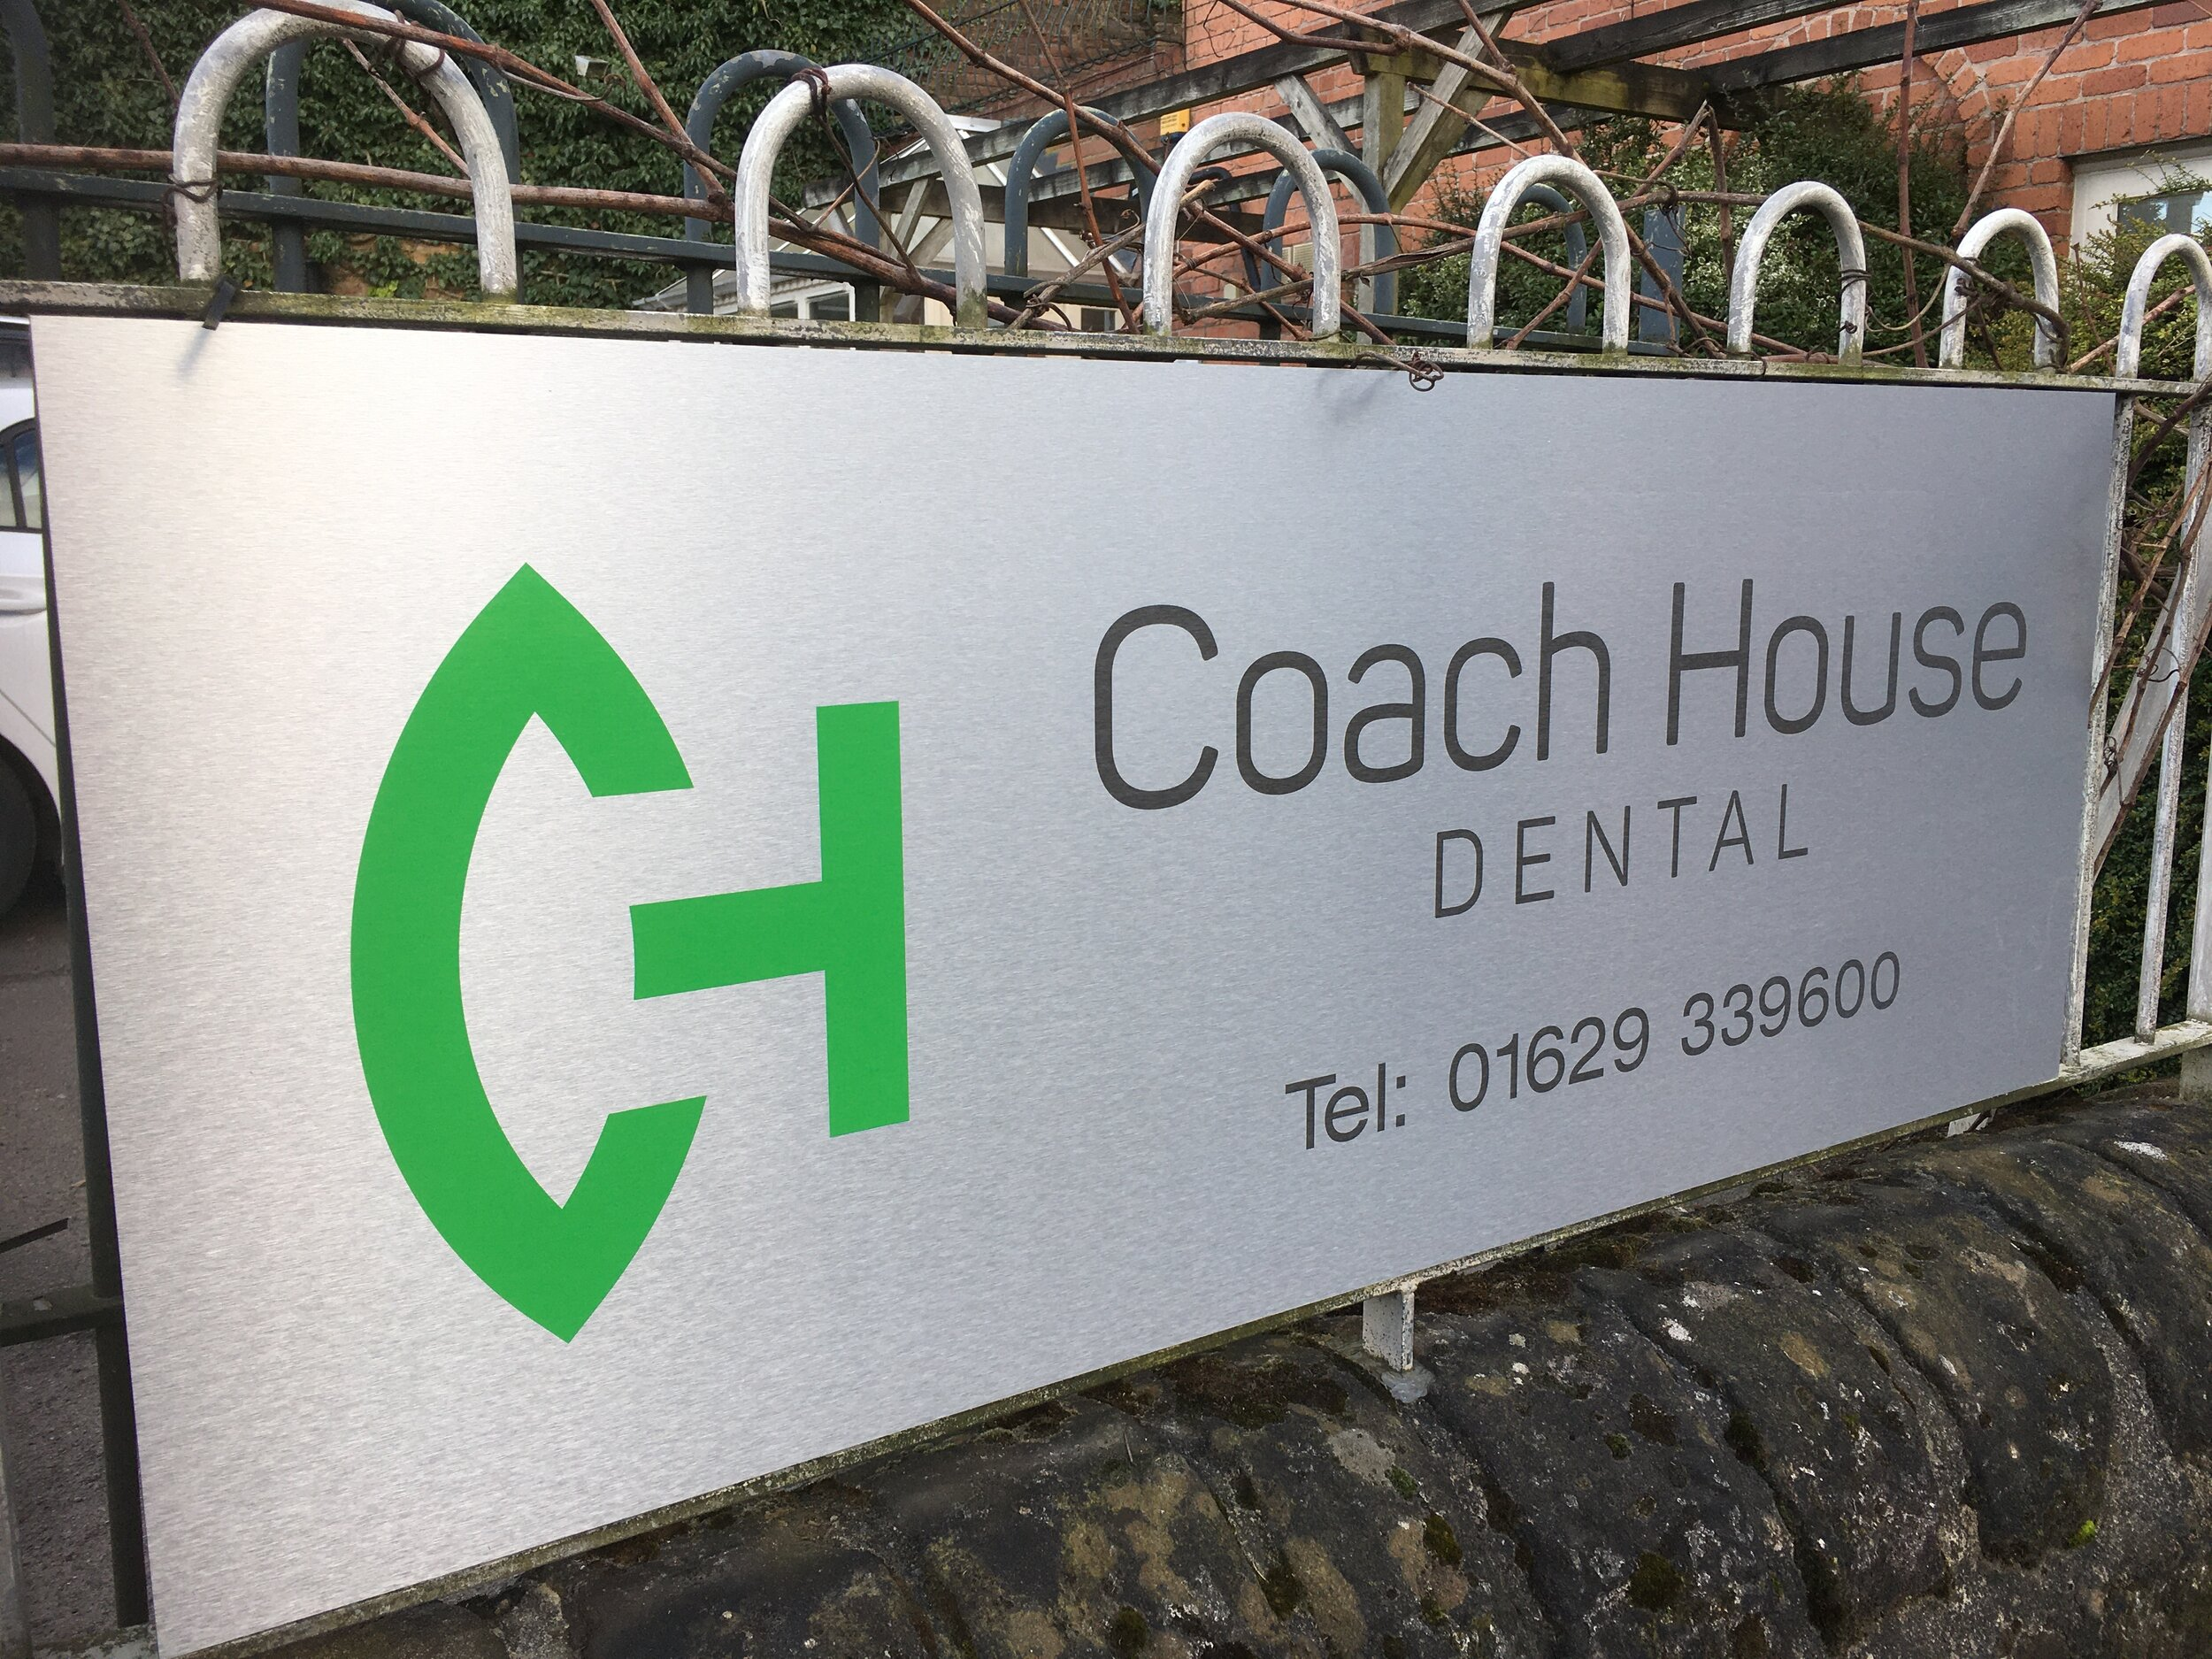 Welcome to Coach House Dental